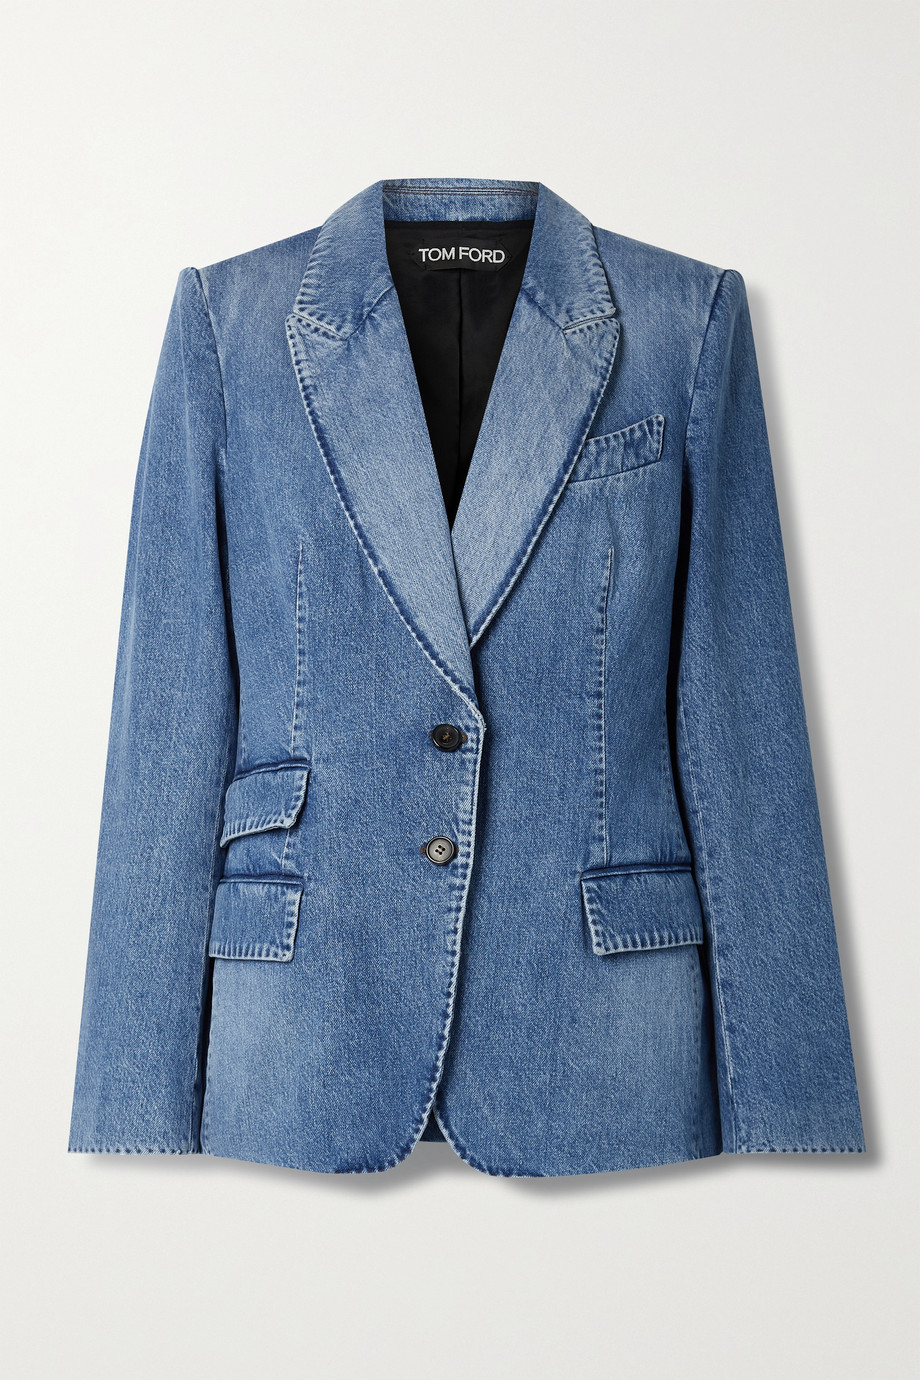 TOM FORD Denim blazer